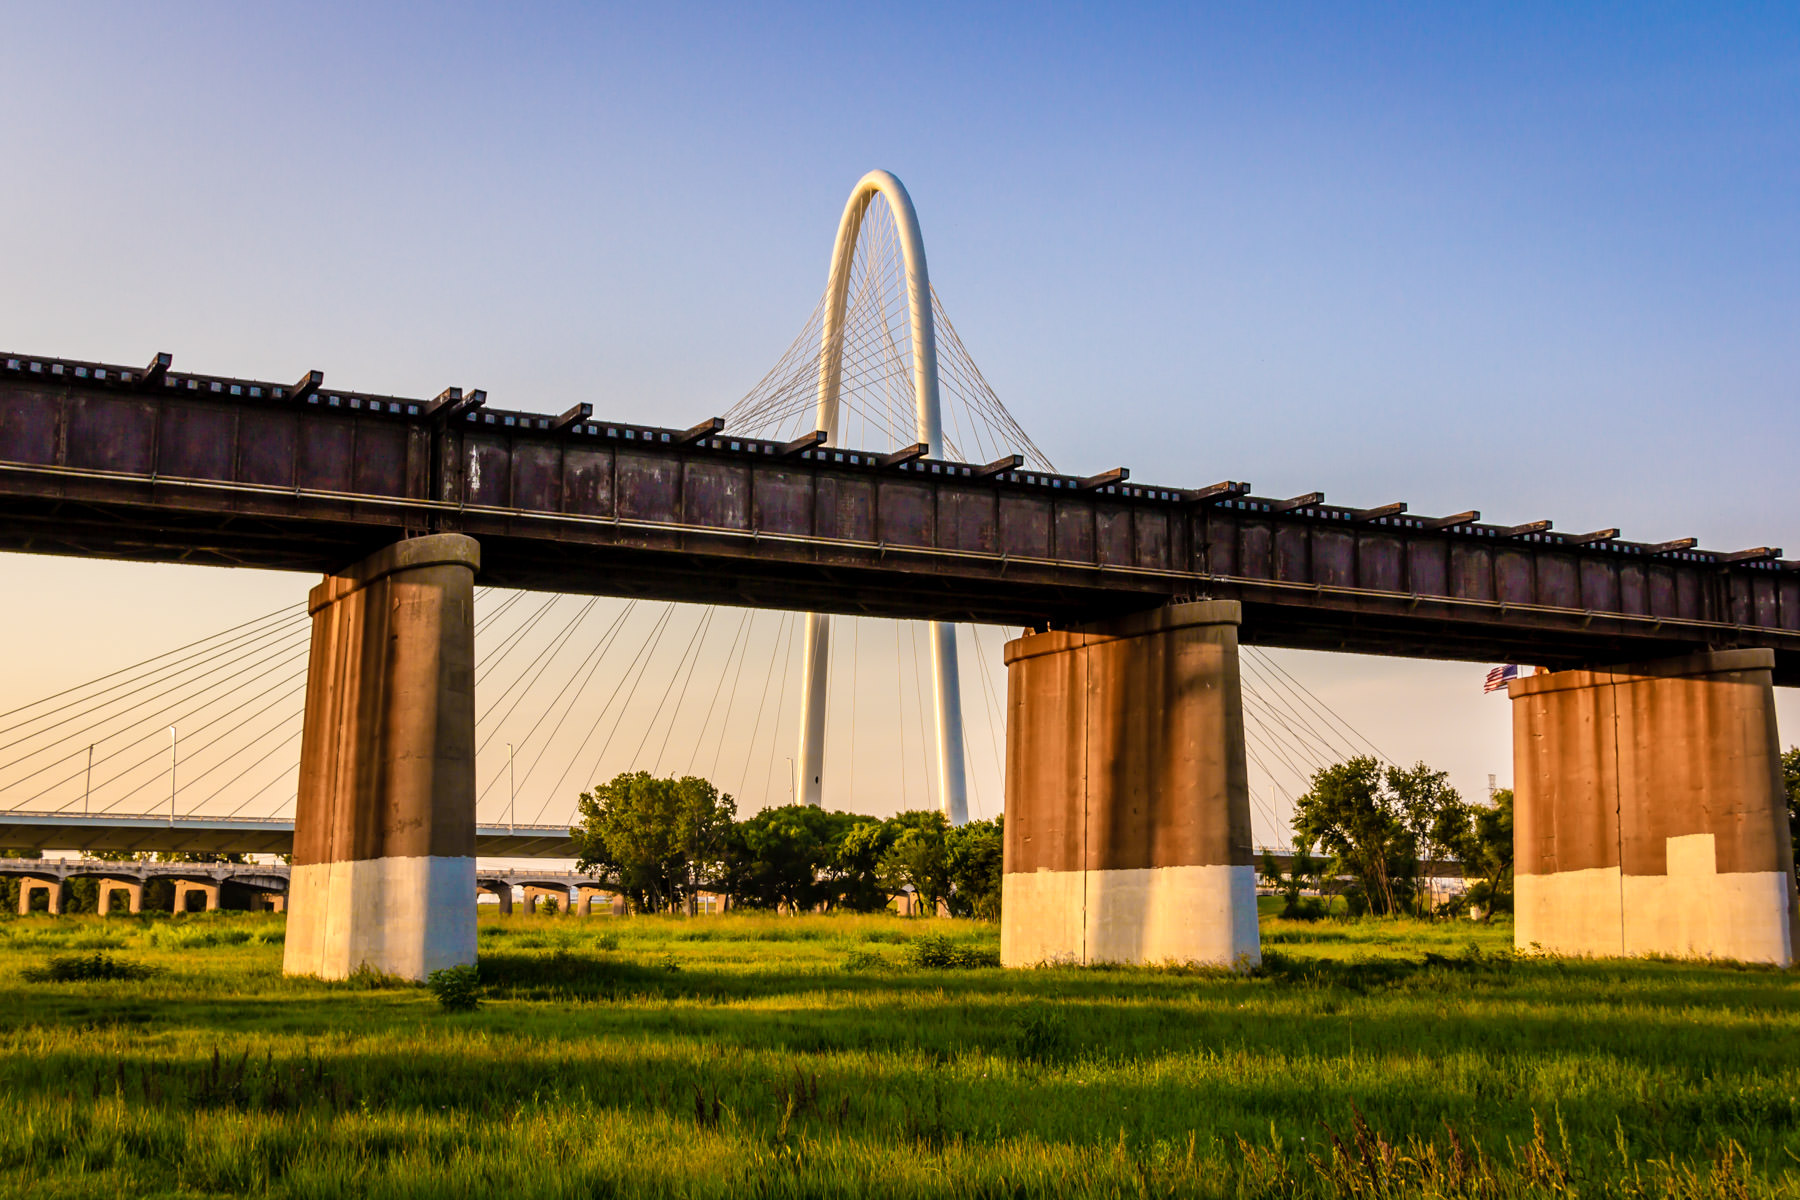 A railroad bridge, in the foreground, is overwhelmed by the massive arch and cables of Dallas' Margaret Hunt Hill Bridge as the sun sets over the DFW Metroplex.